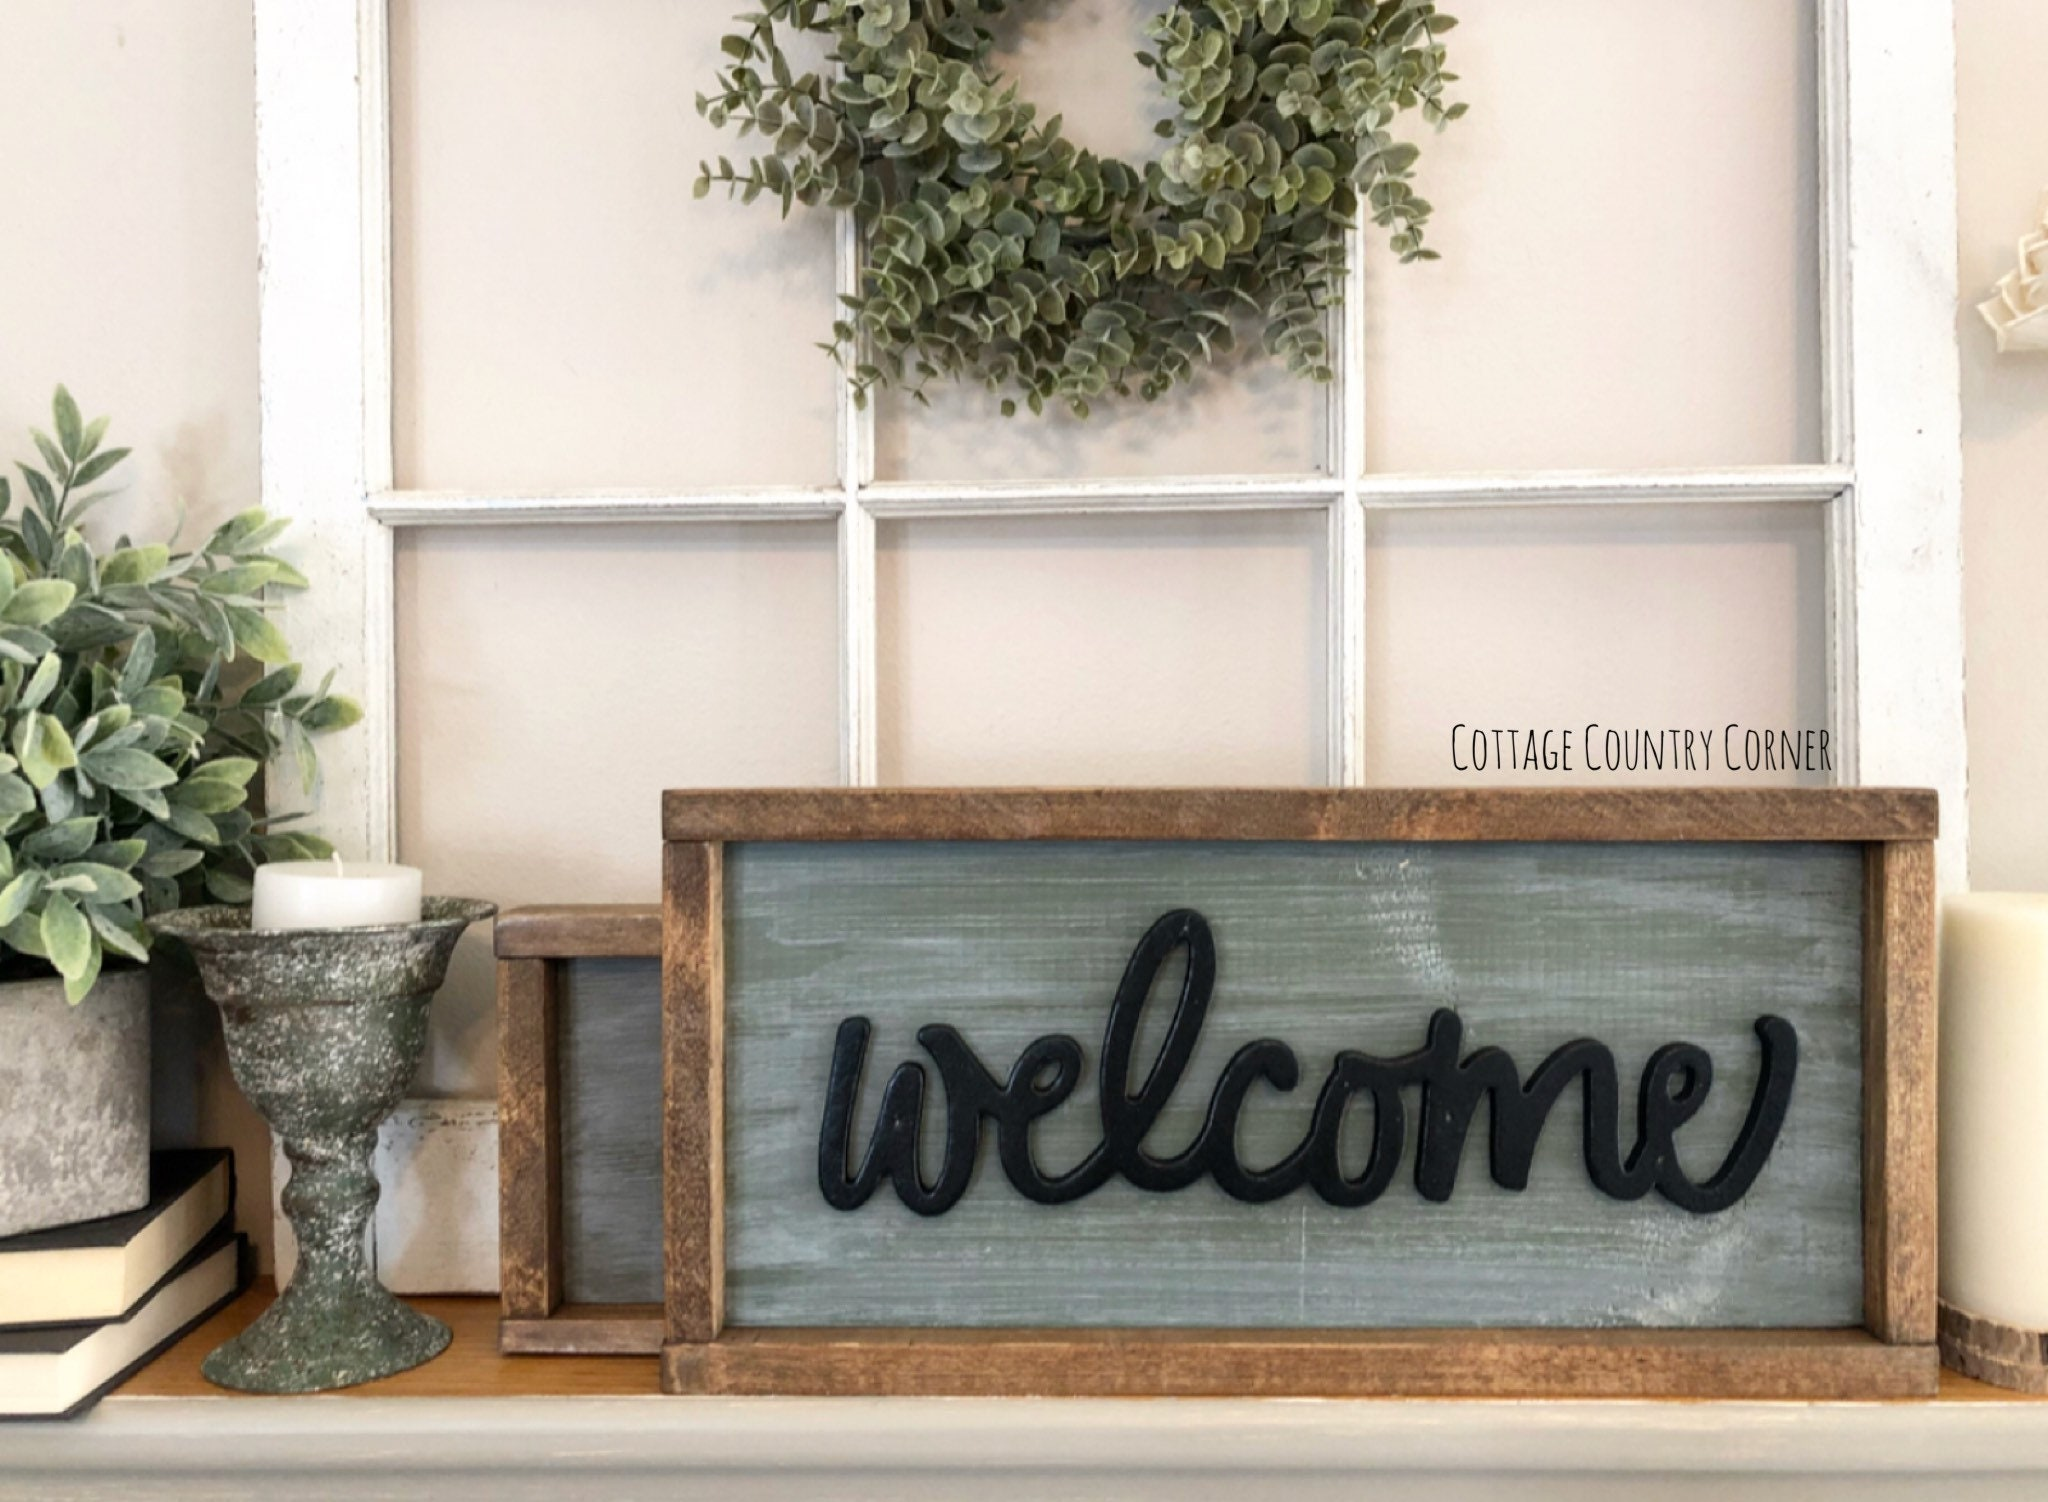 Welcome sign farmhouse decor wall decor farmhouse kitchen farmhouse kitchen decor kitchen decor home decor